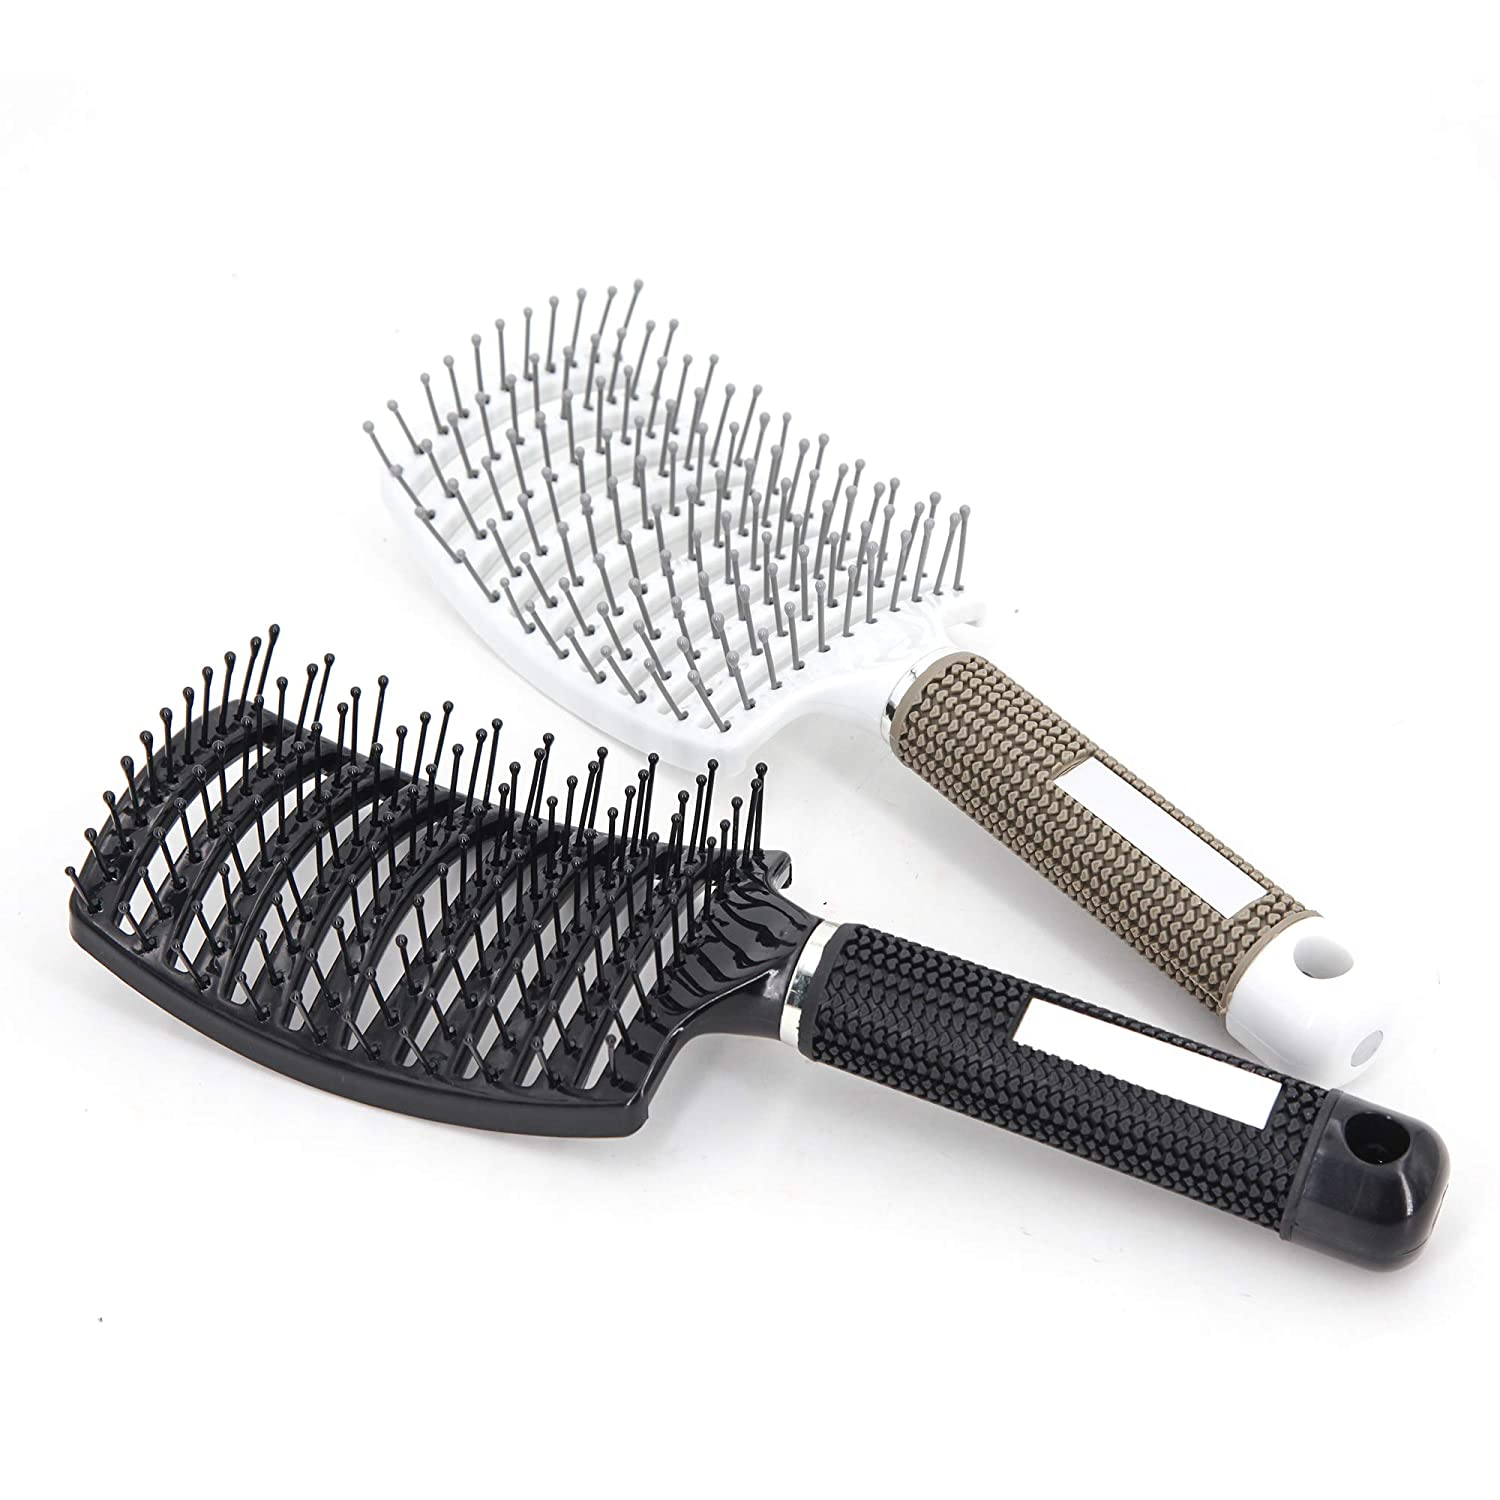 Amazon Com 2 Pc Curved Vented Hair Brushes For Women Eyxformula Anti Frizz Hair Detangling Brush For Long Thick Curly Hair Large Paddle Blow Fast Drying Hair Detangler Wet Hair Brush Massage